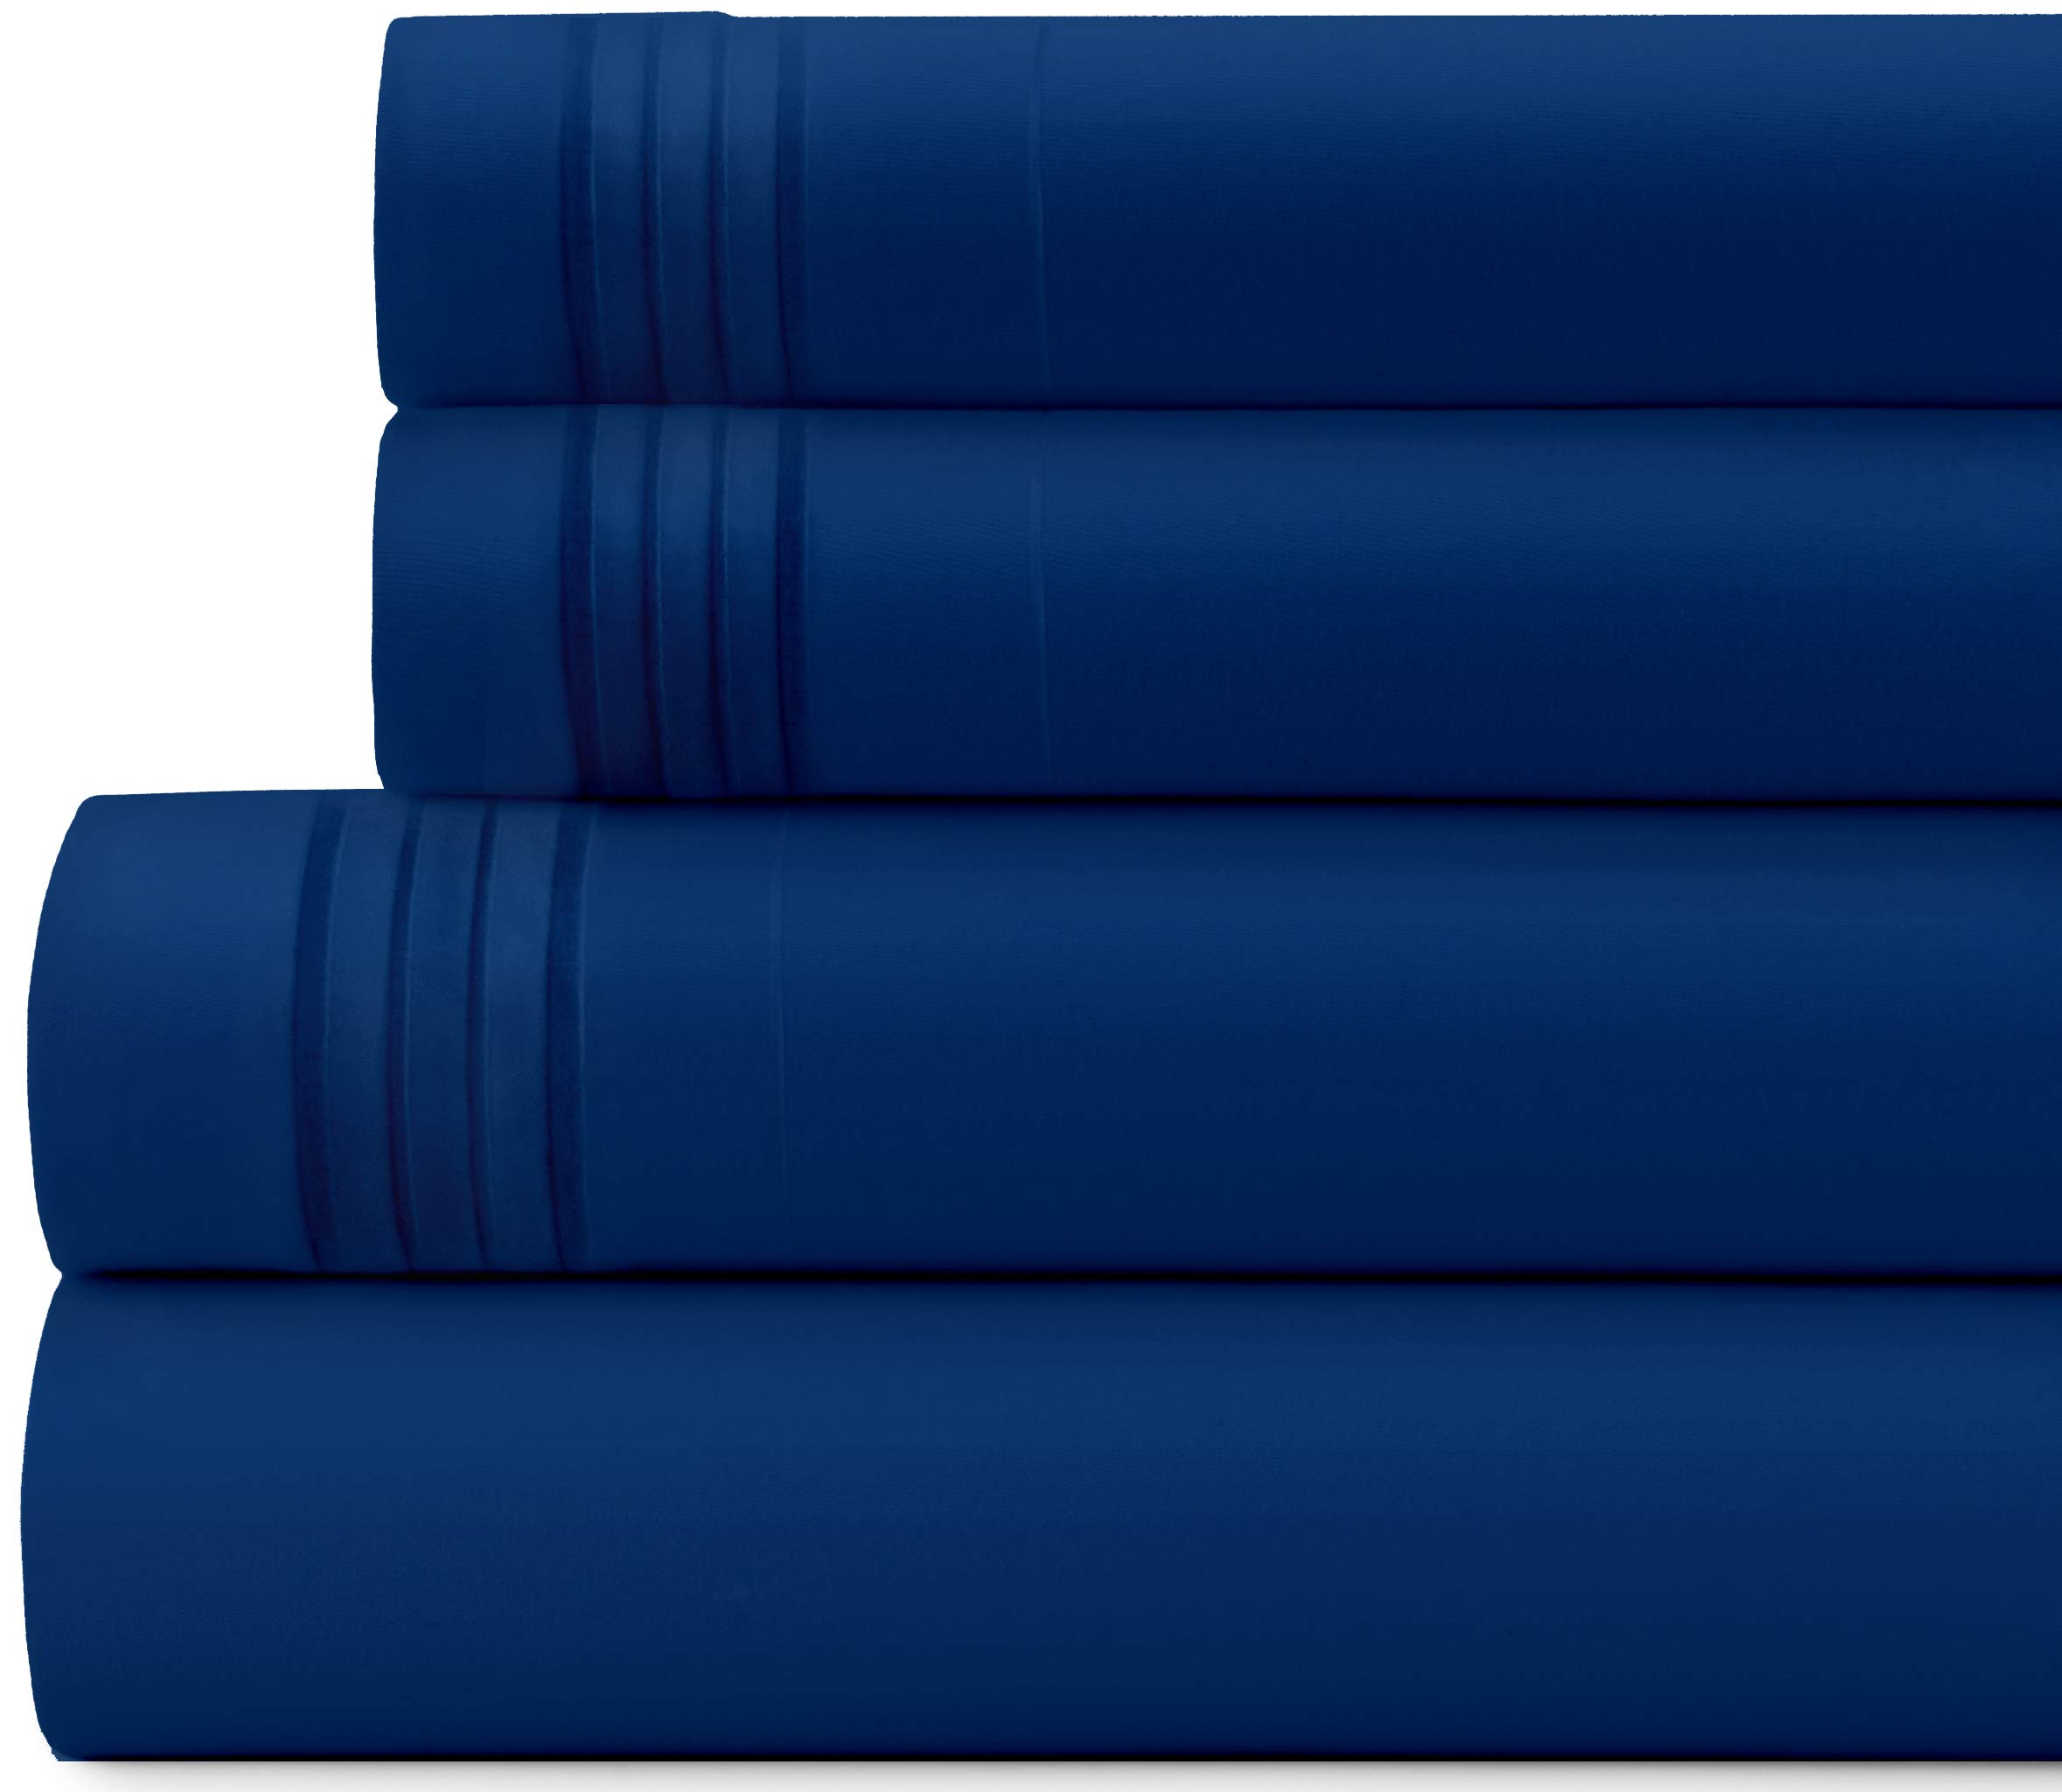 Briarwood Home Bed Sheet Set – Brushed Microfiber 1900 Premium Quality Soft Fabric Breathable Bedding – Deep Pocket – Wrinkle, Fade & Shrinkage Resistant 3 Piece Sheets (Twin/Royal Blue)